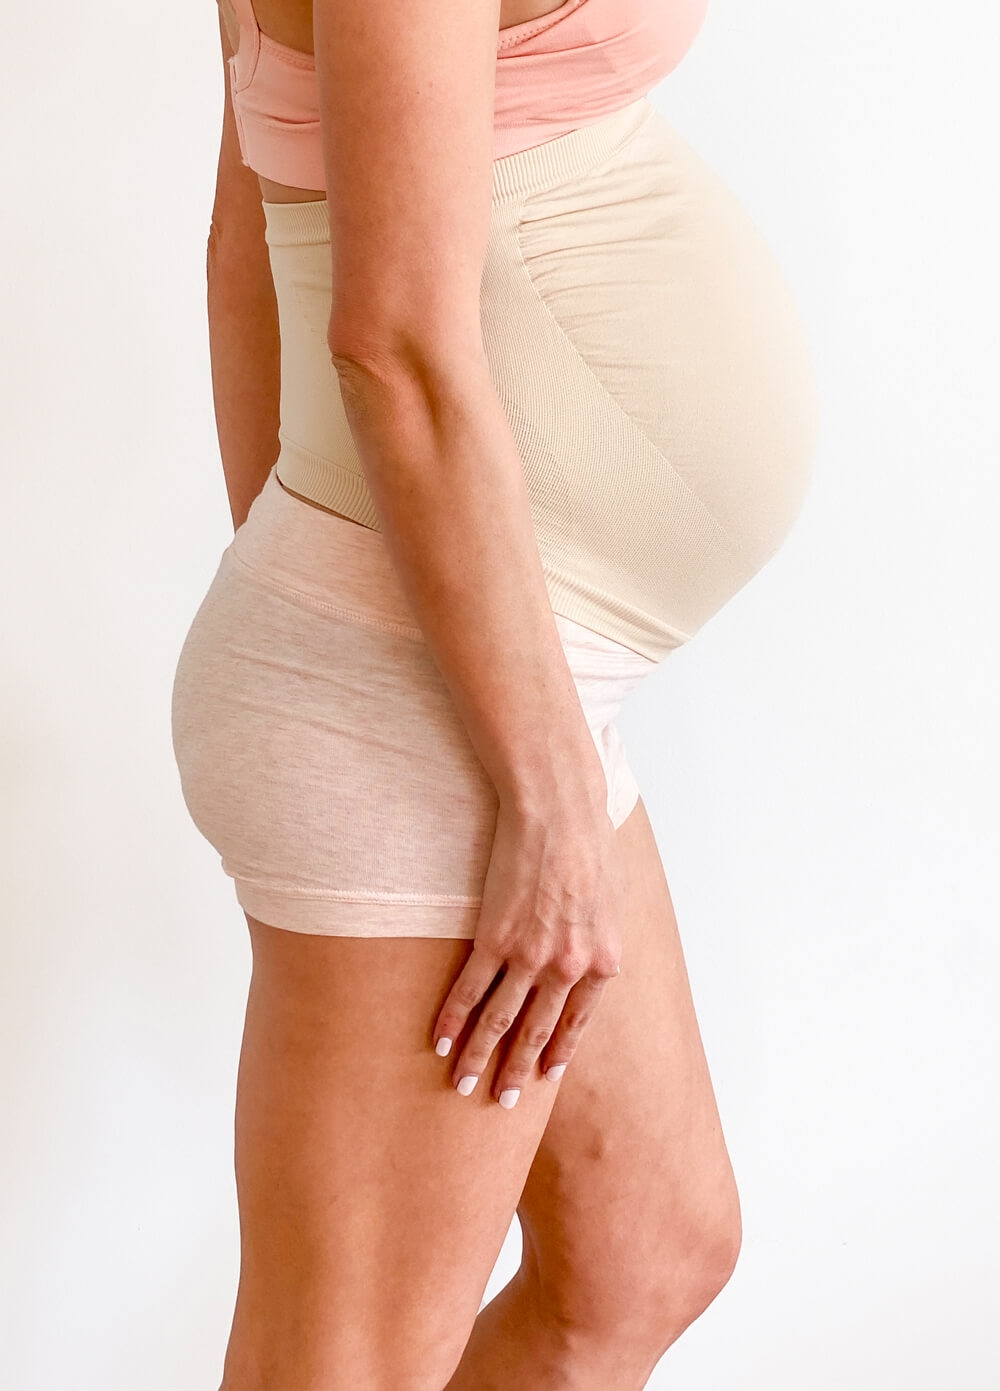 Queen Bee - Barely There Maternity Support Belly Band in Nude